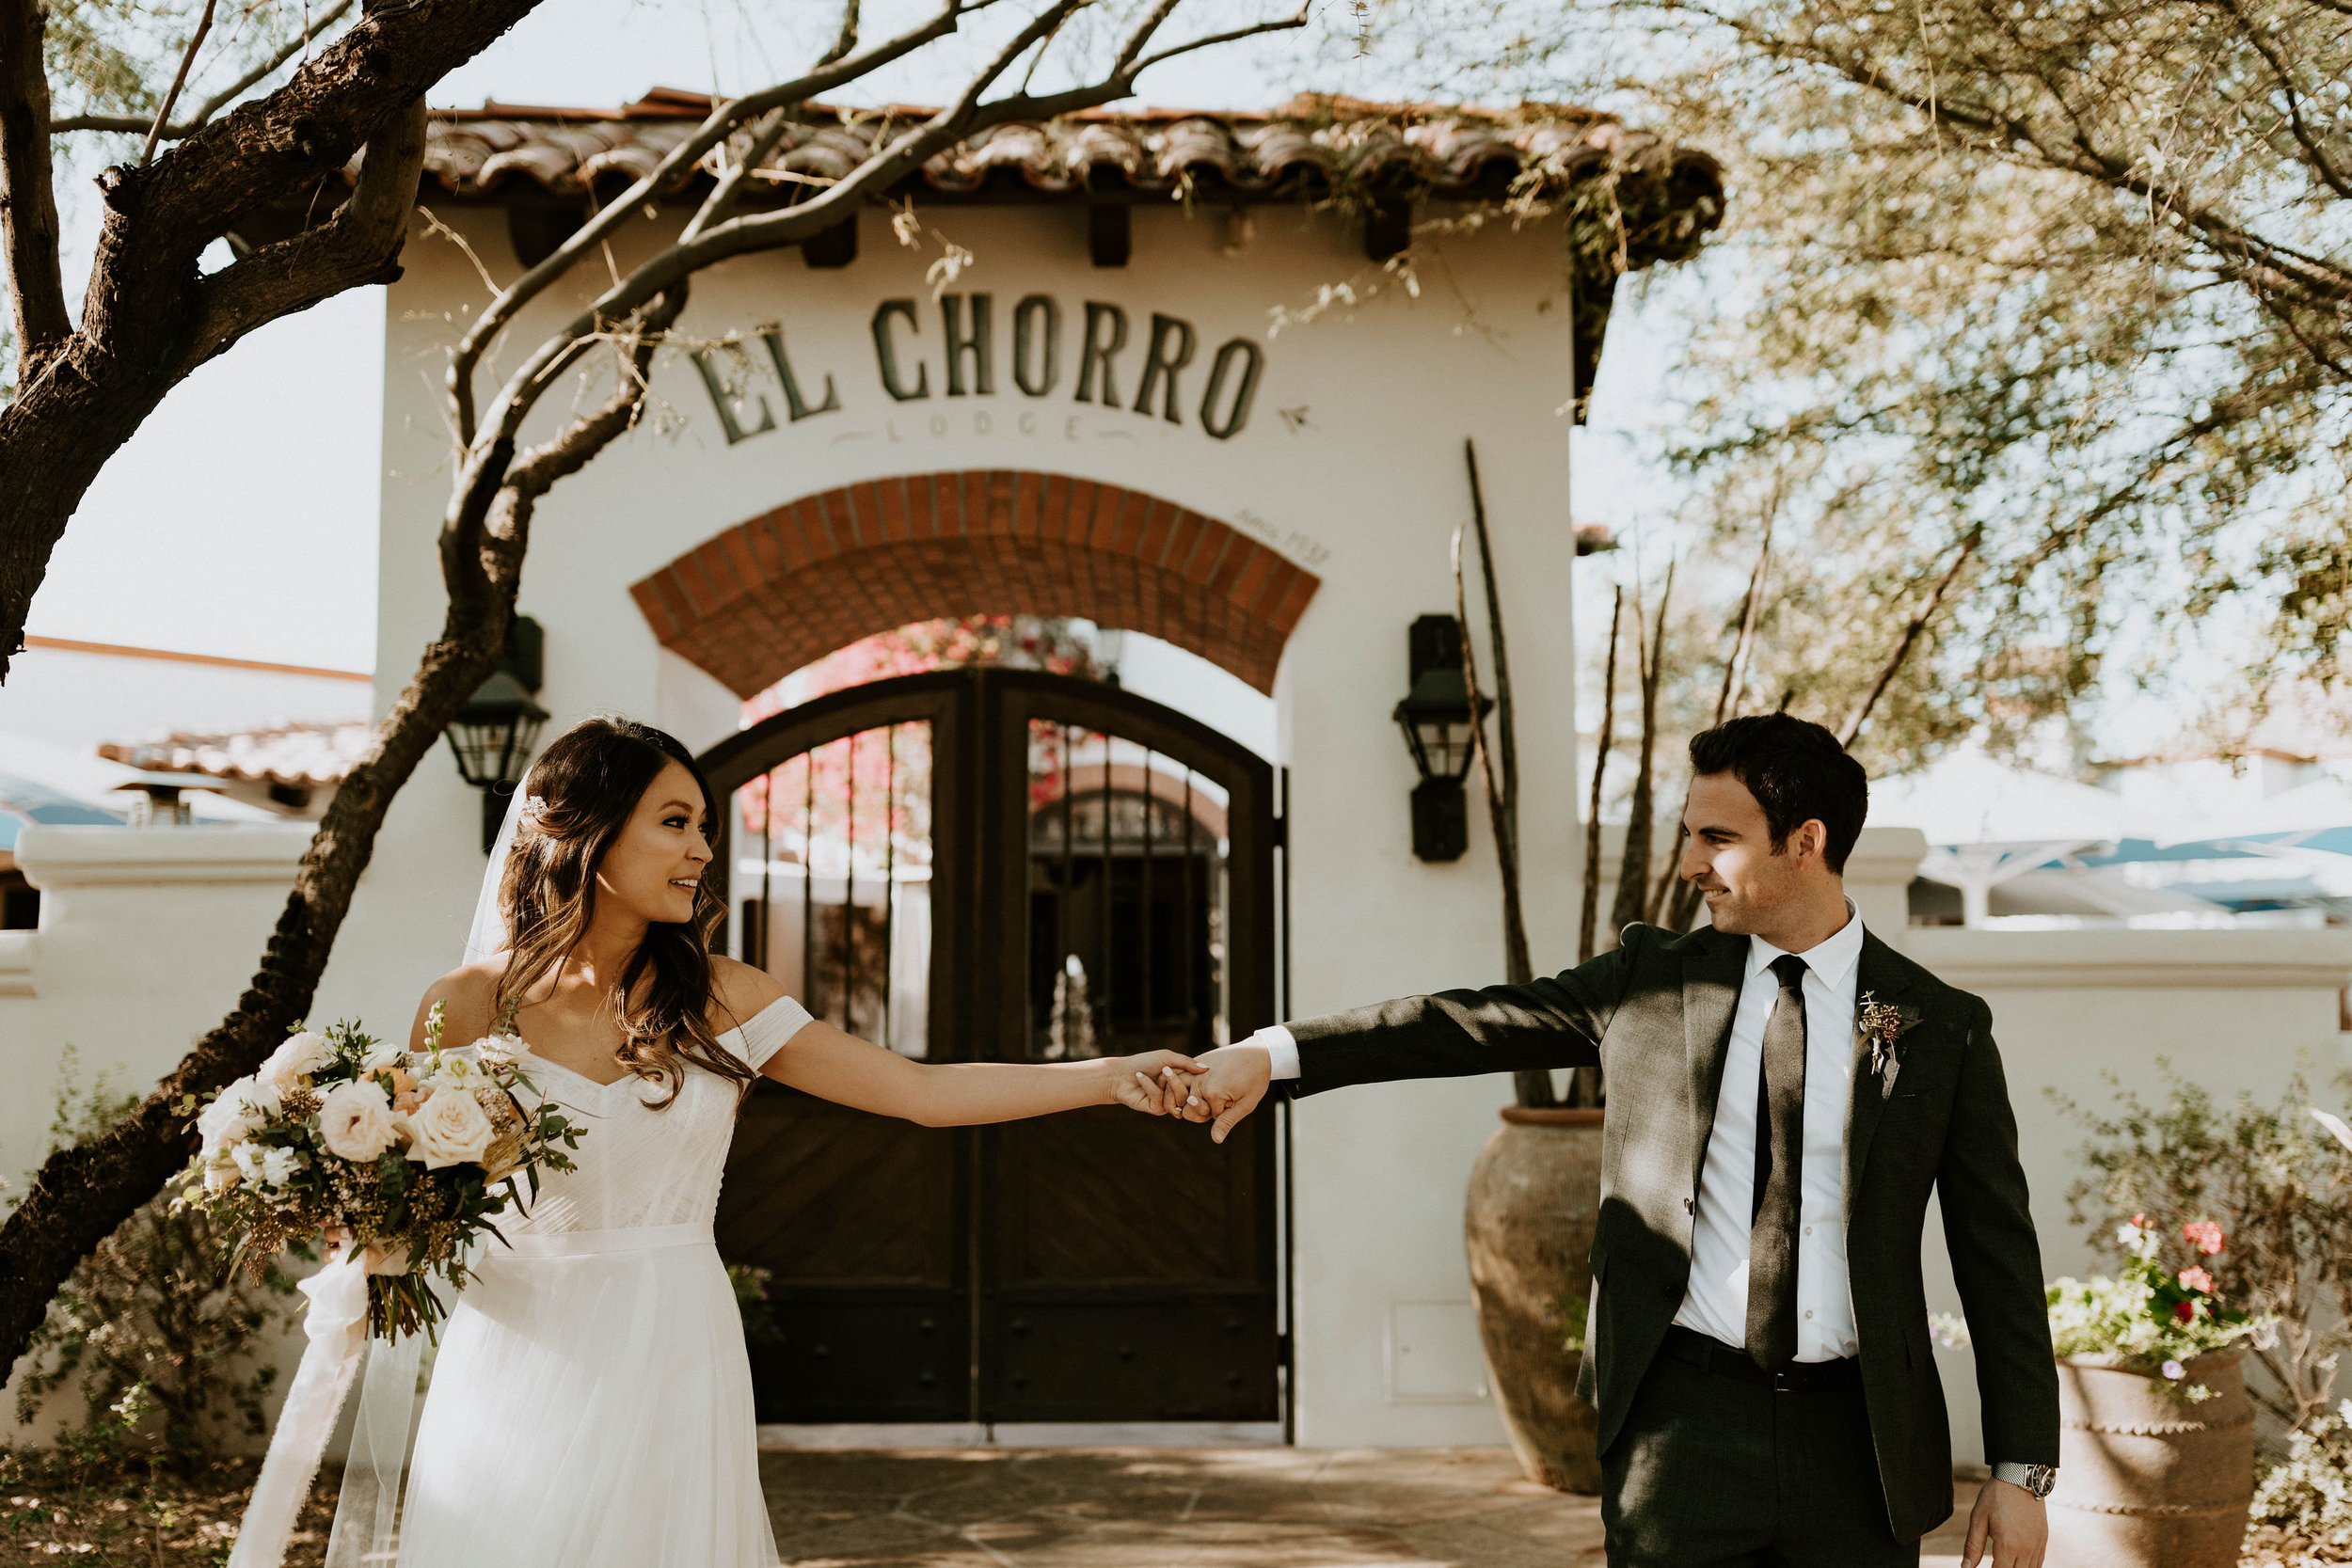 Couple photo location at El Chorro wedding space